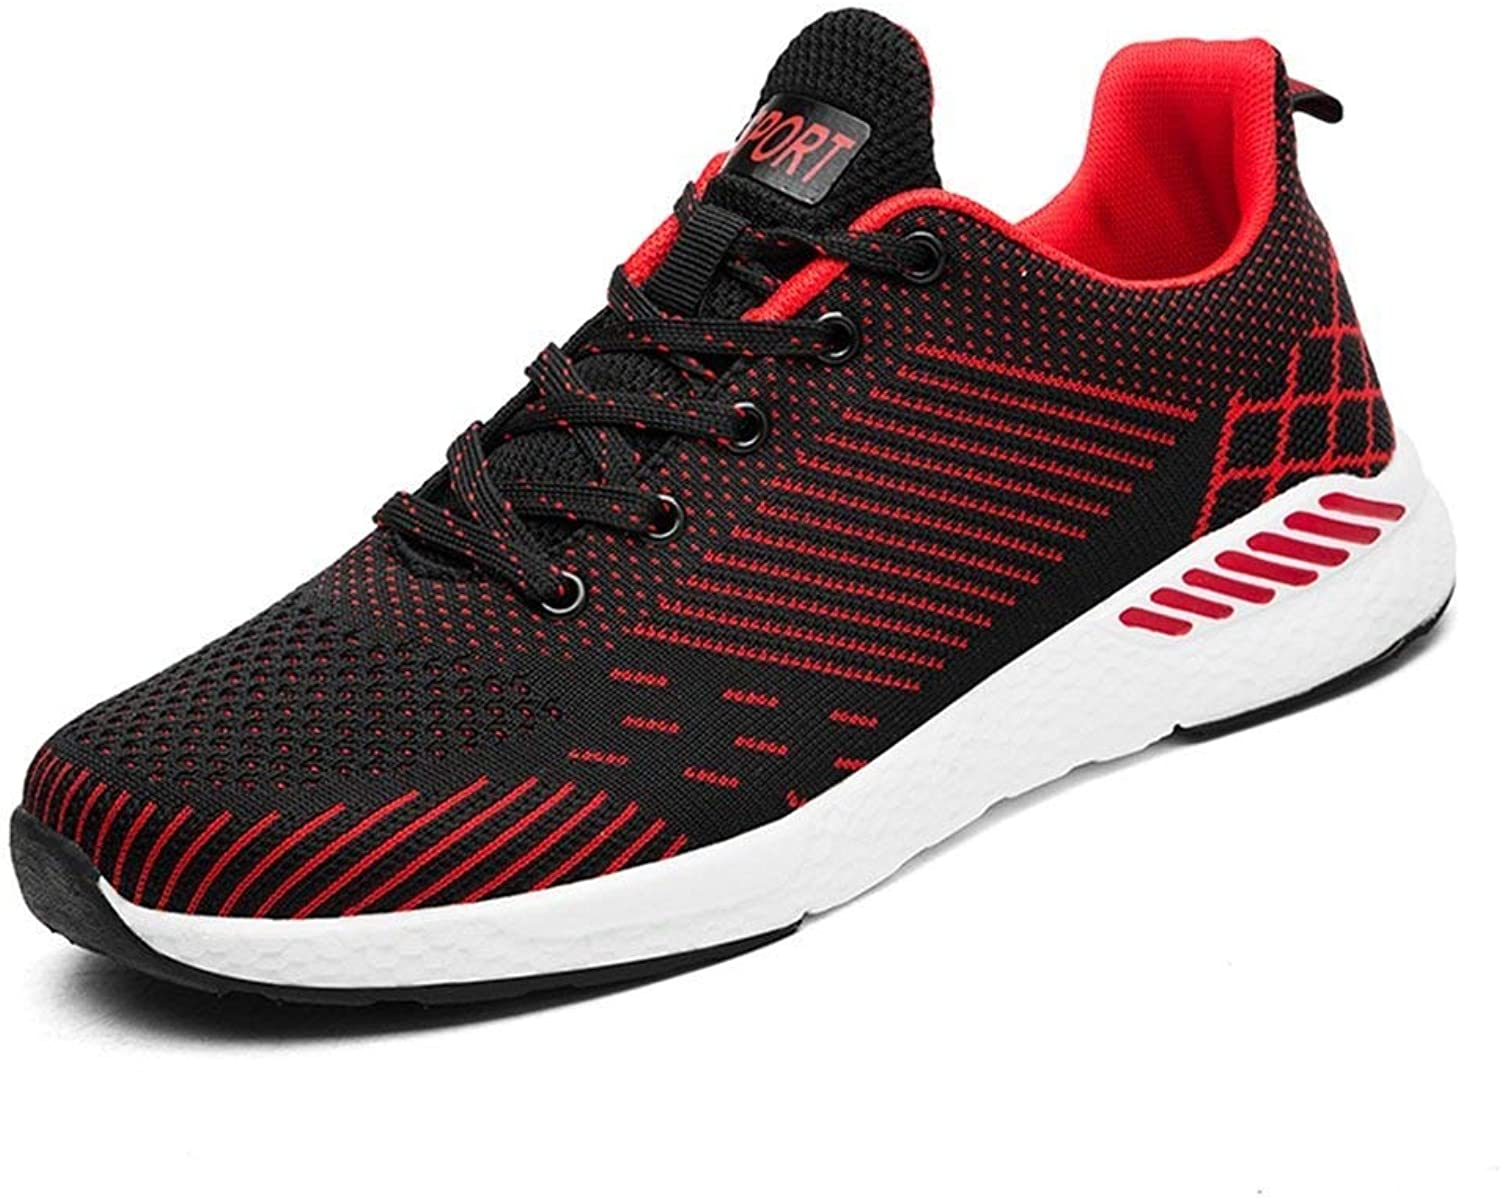 Hhgold 2018 Men's Athletic Sneakers Casual Style Summer Mesh Breathable Fly Weave ONE Pair Of Running Sneakers (color  Black, Size  45 EU) (color   Red, Size   47 EU)